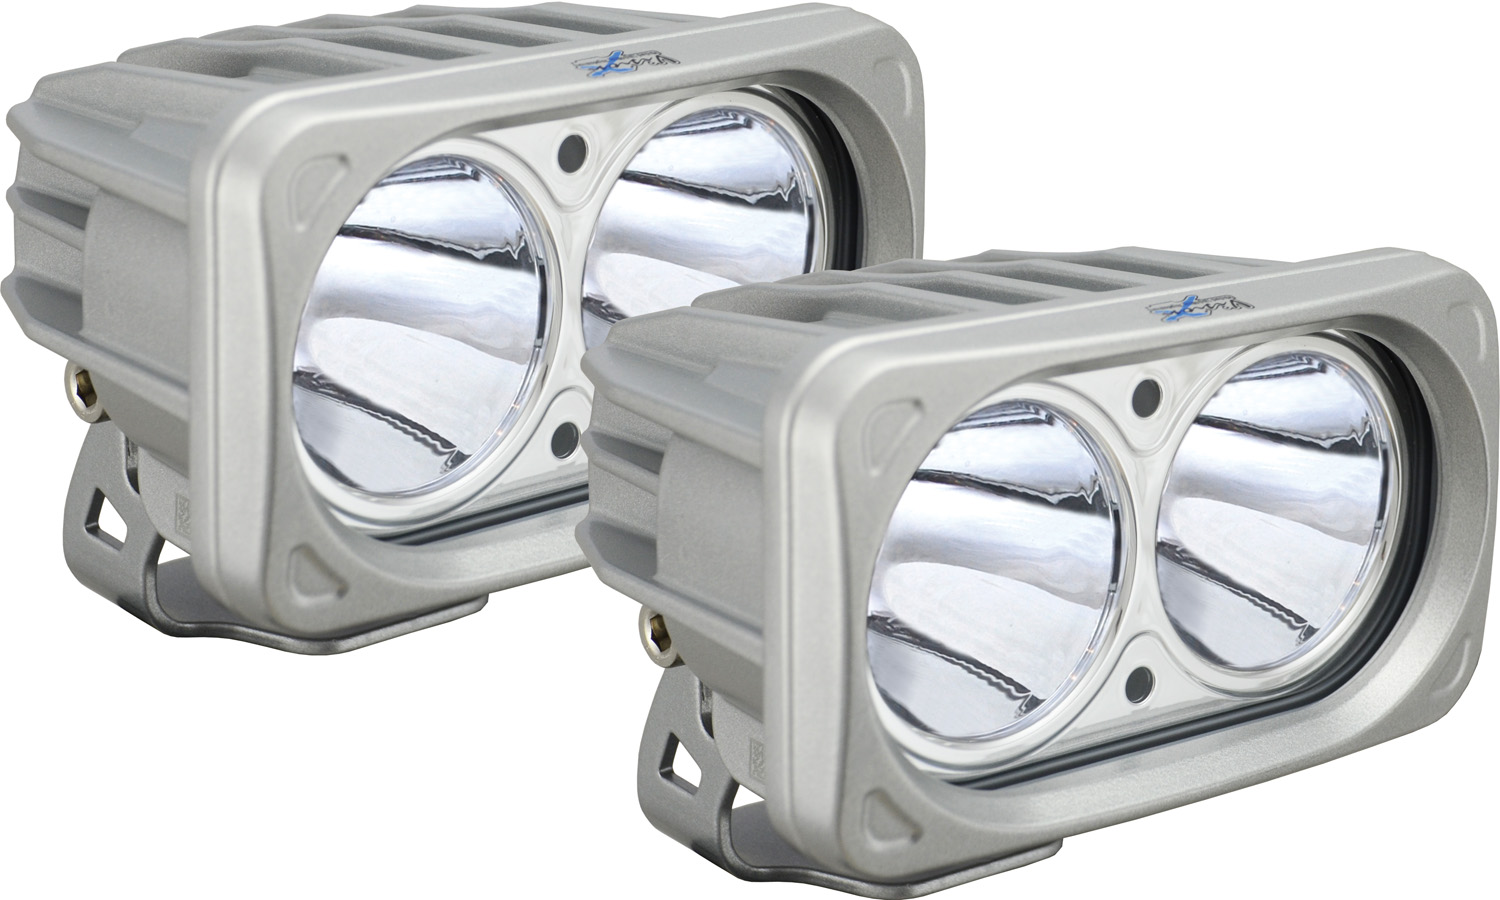 OPTIMUS SQUARE SILVER 2 10W LEDS 10° NARROW